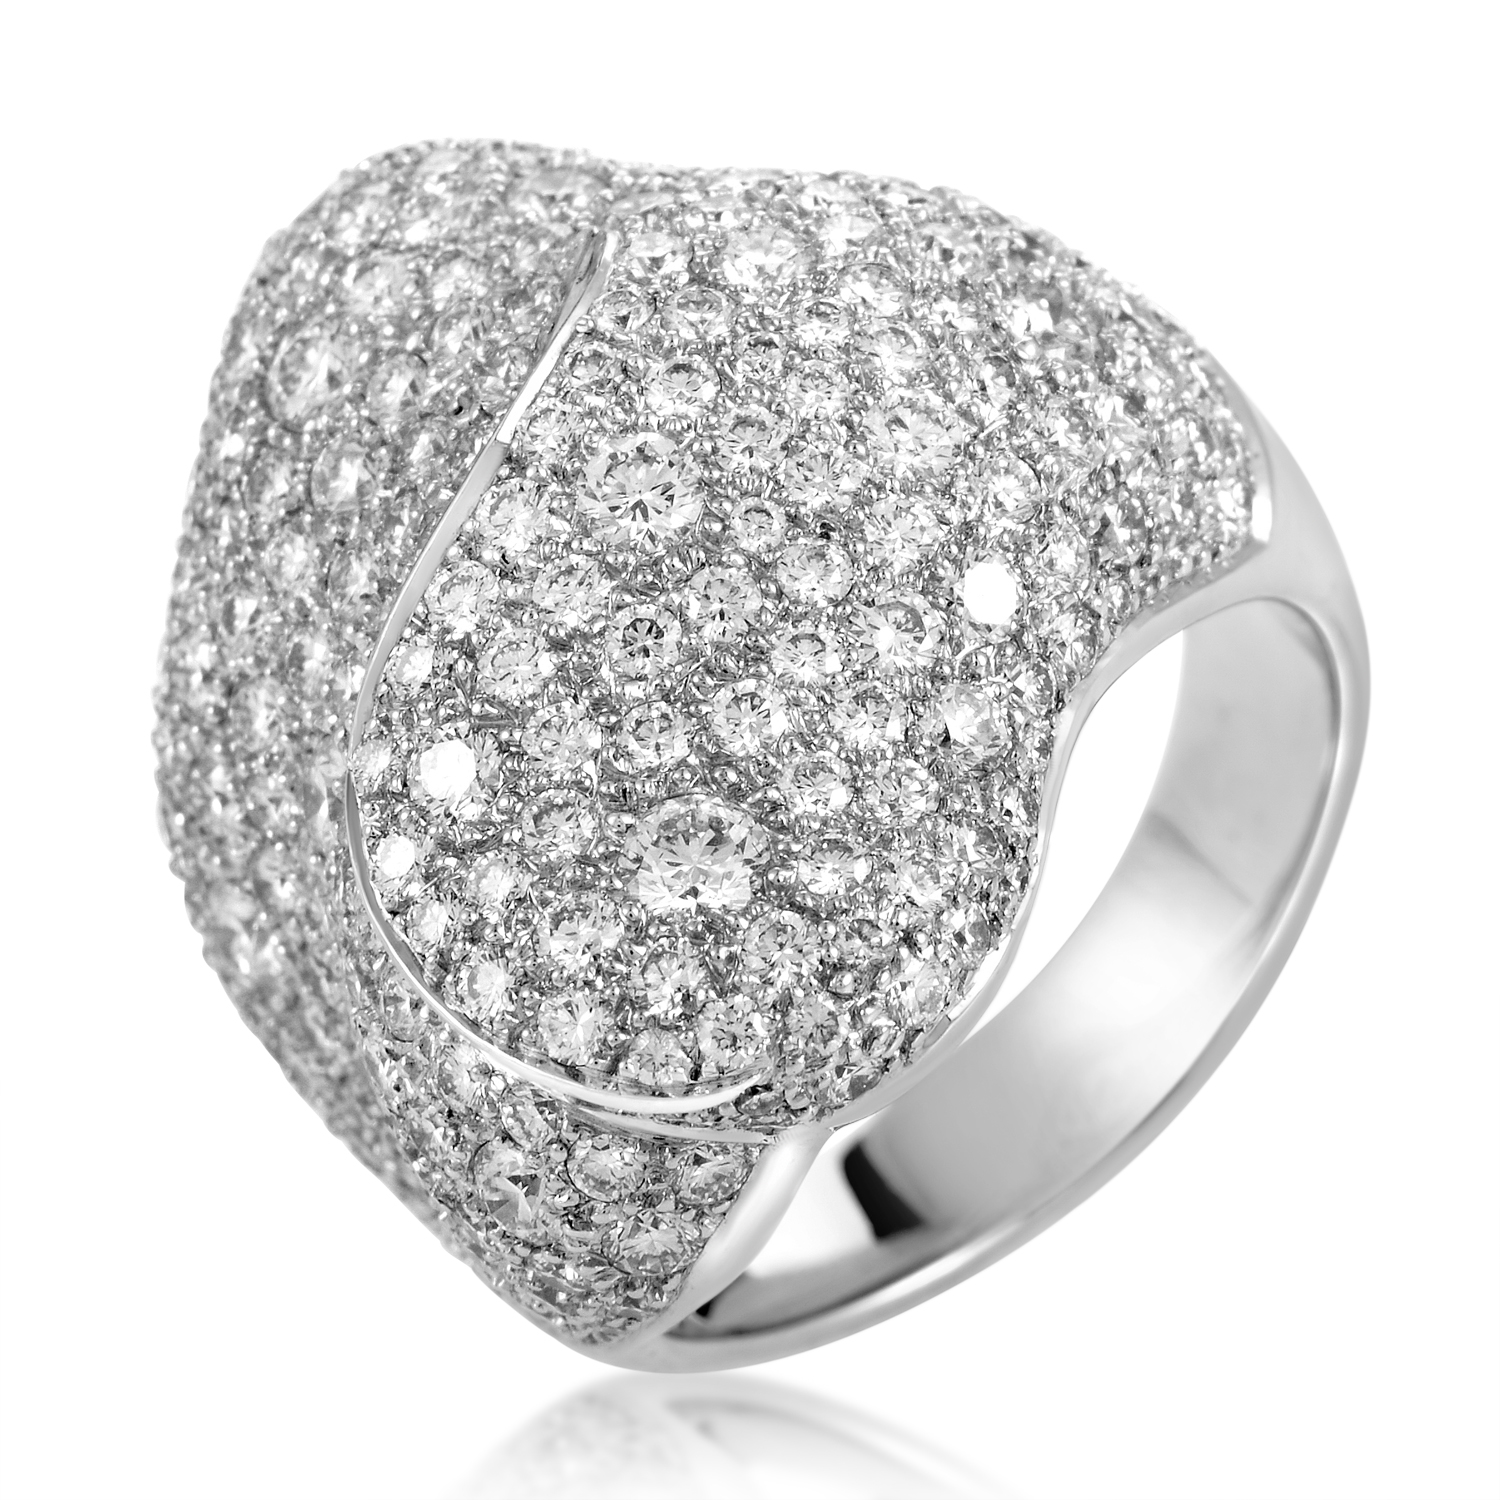 Women's 18K White Gold Brilliant Cut Diamond Pave Ring